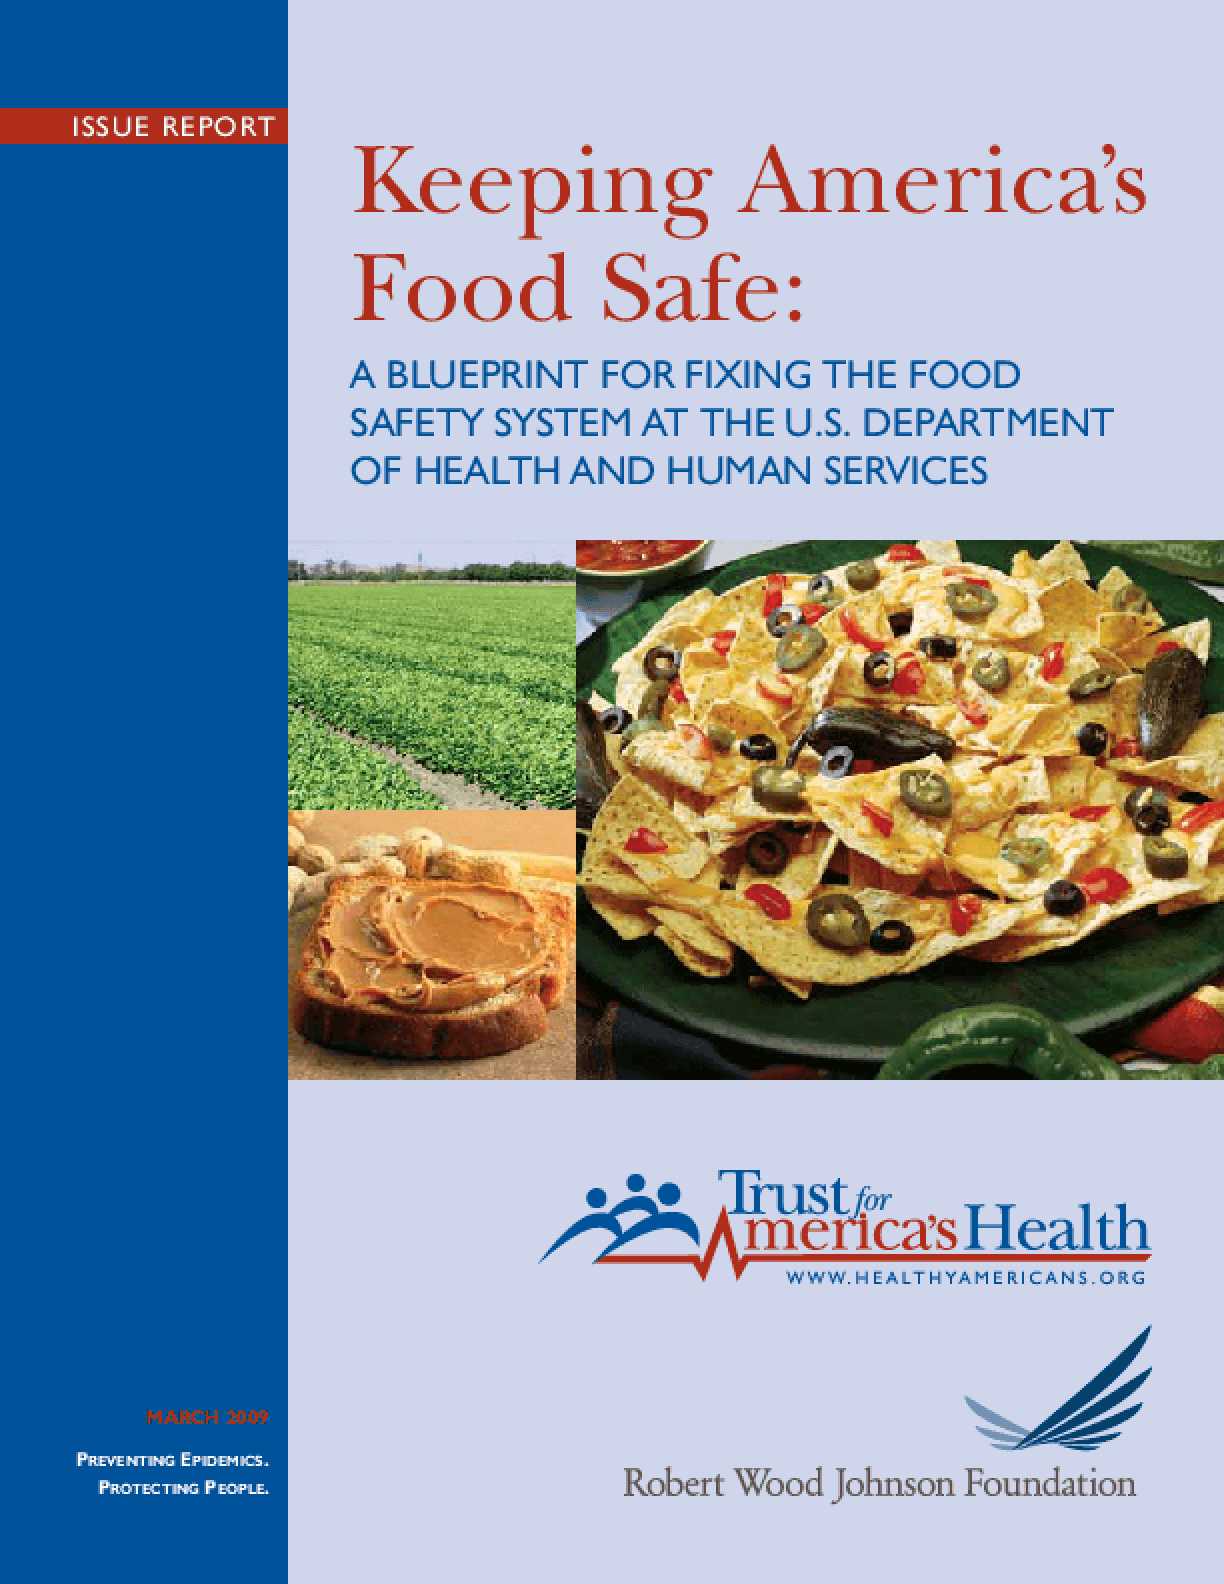 Keeping America's Food Safe: A Blueprint for Fixing the Food Safety System at the U.S. Department of Health and Human Services